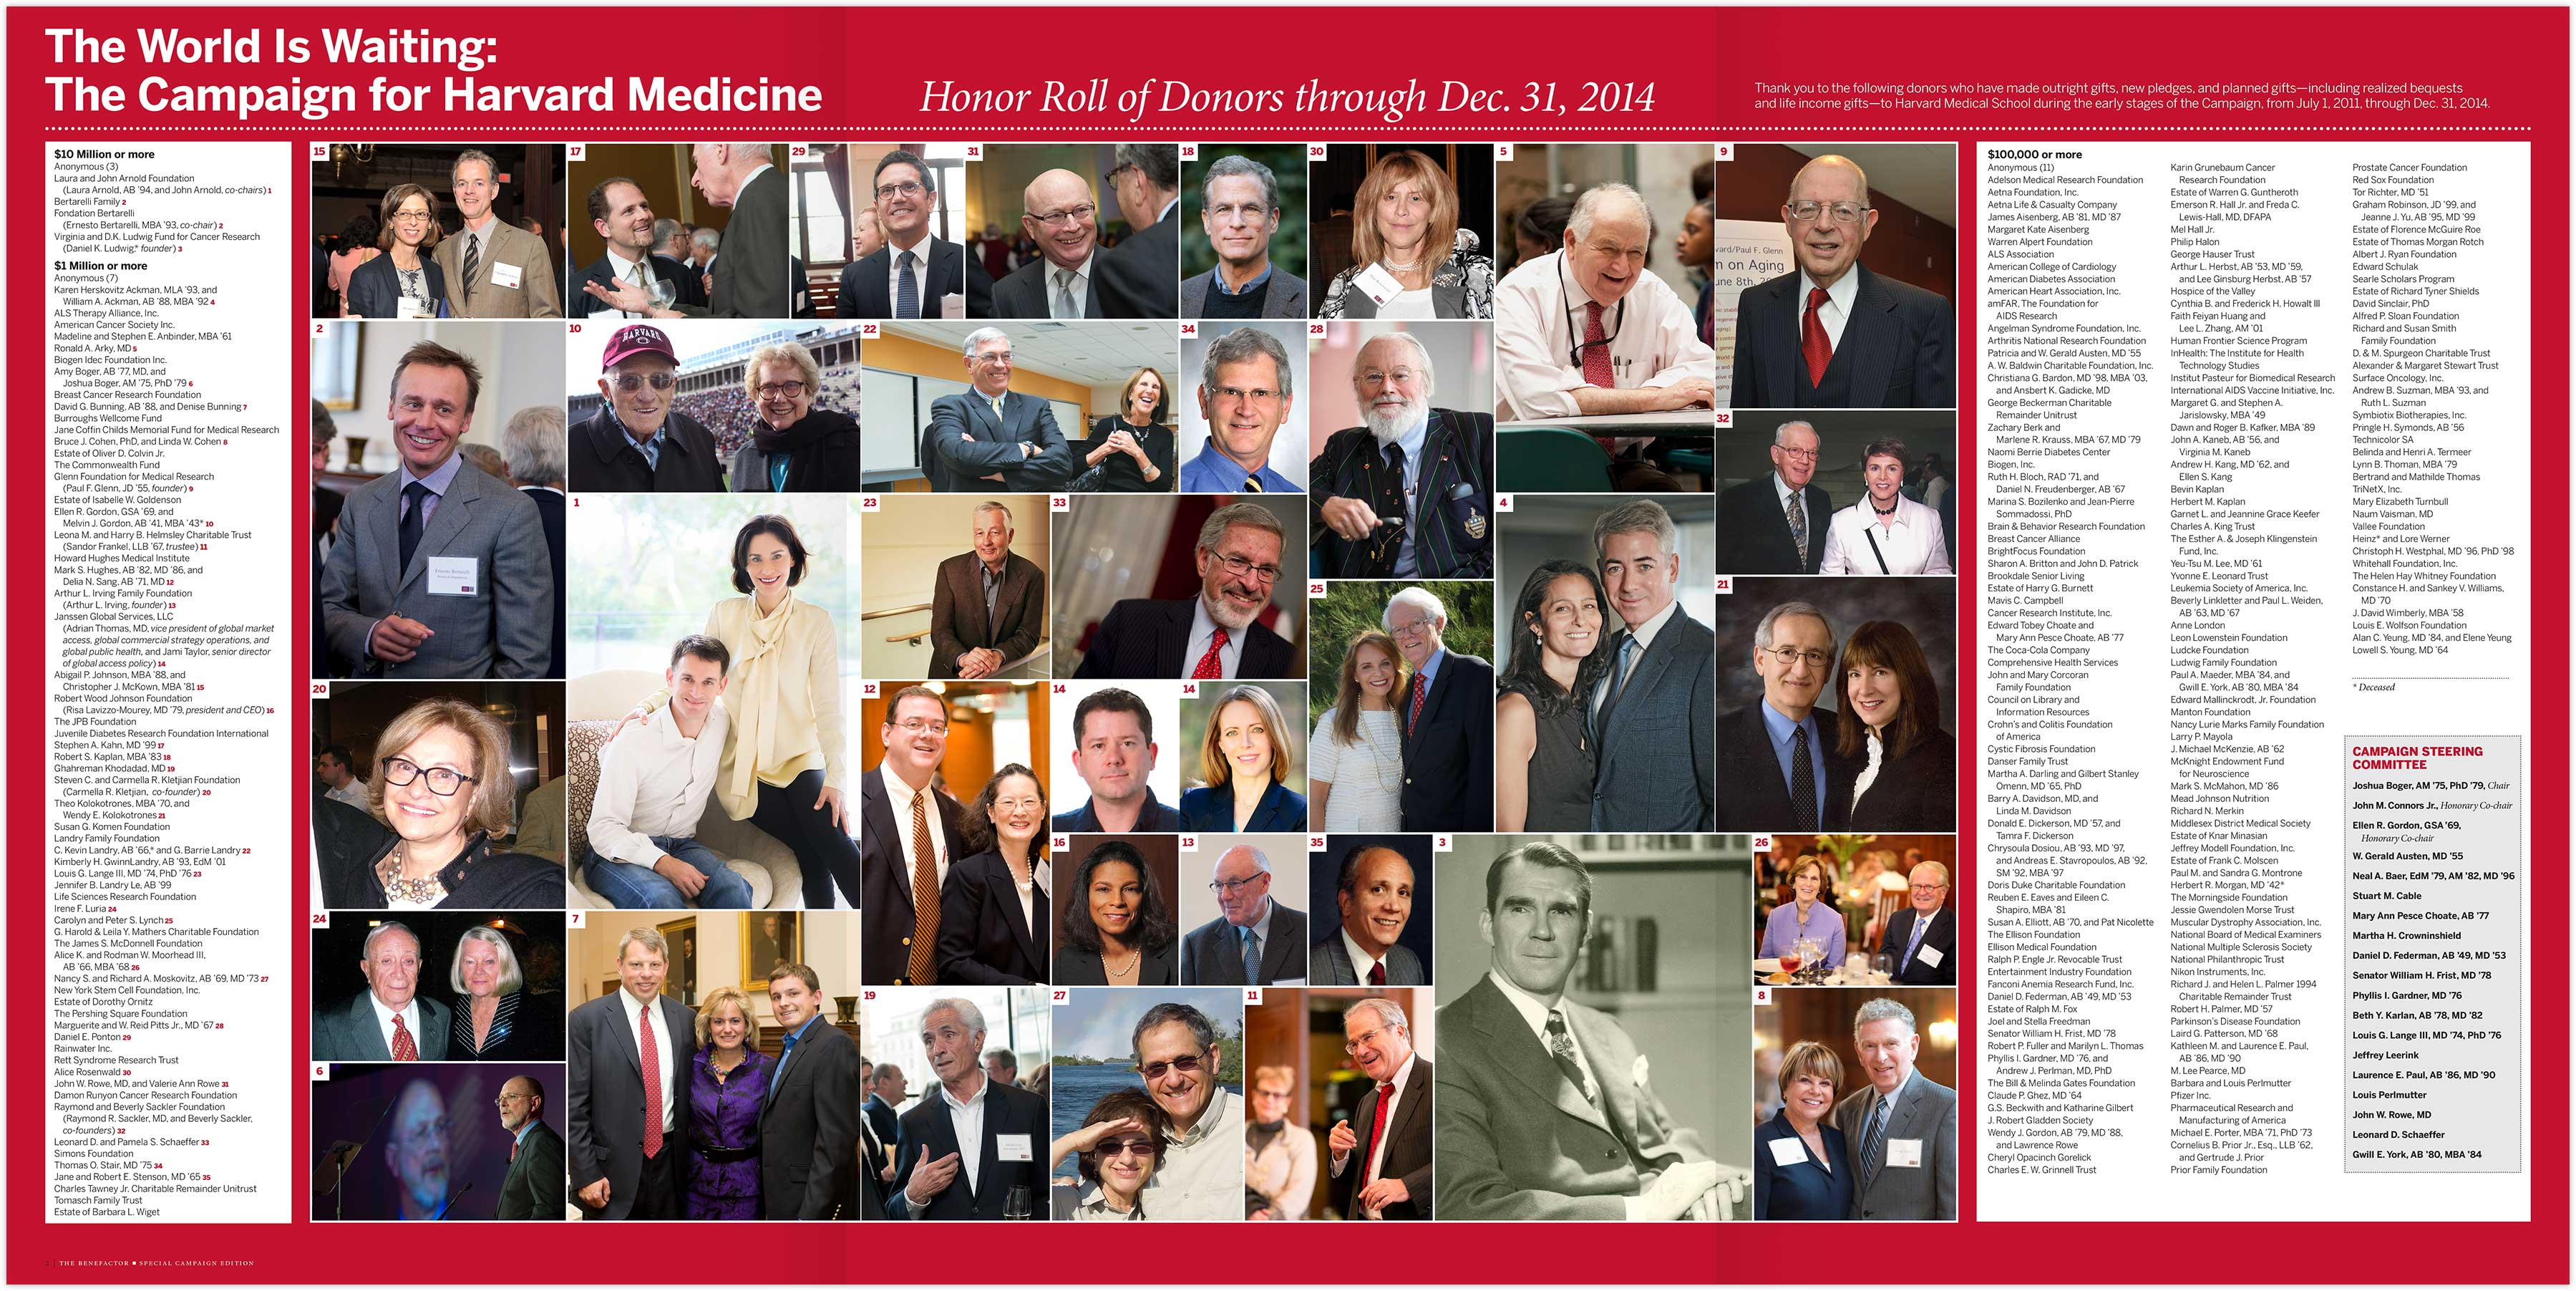 The Benefactor newsletter spread: The Campaign for Harvard Medicine